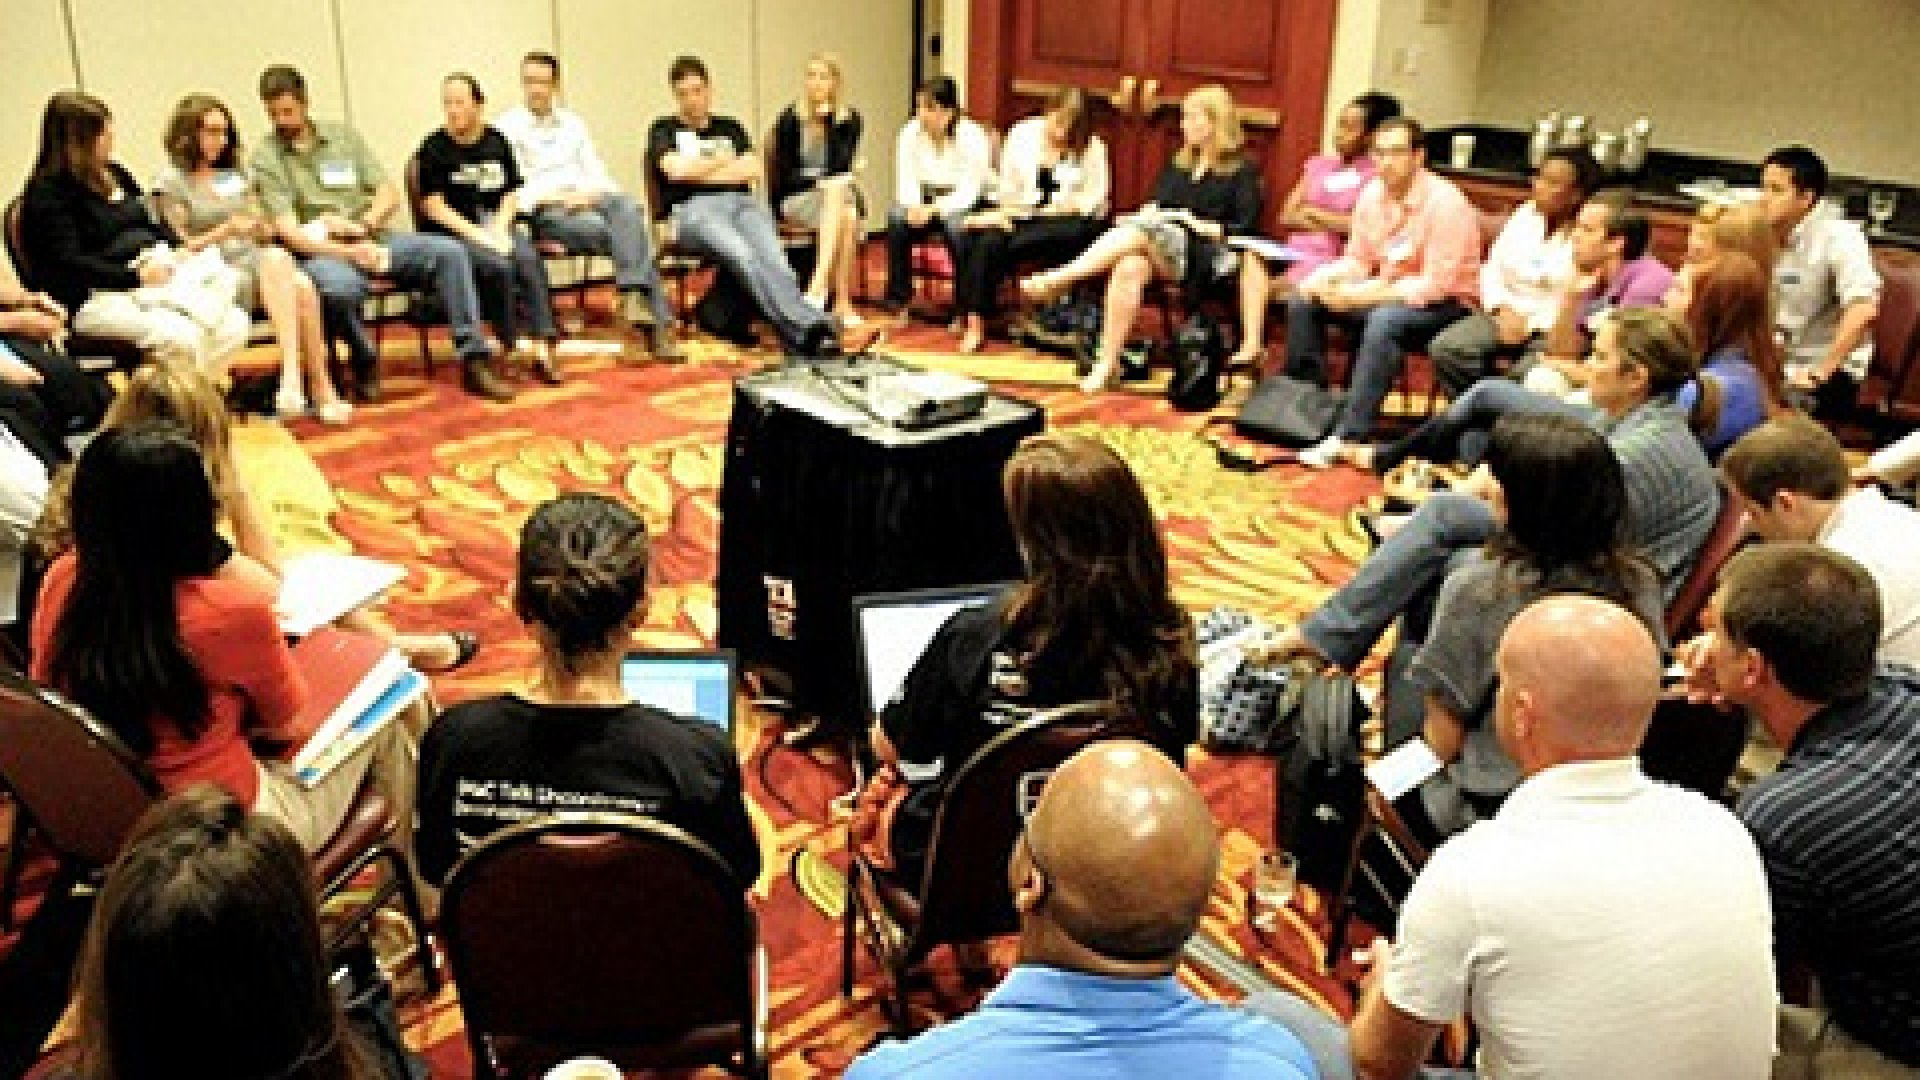 At the Entrepreneur's Unconference, a group of global entrepreneurs talk strategy in an unscripted environment.